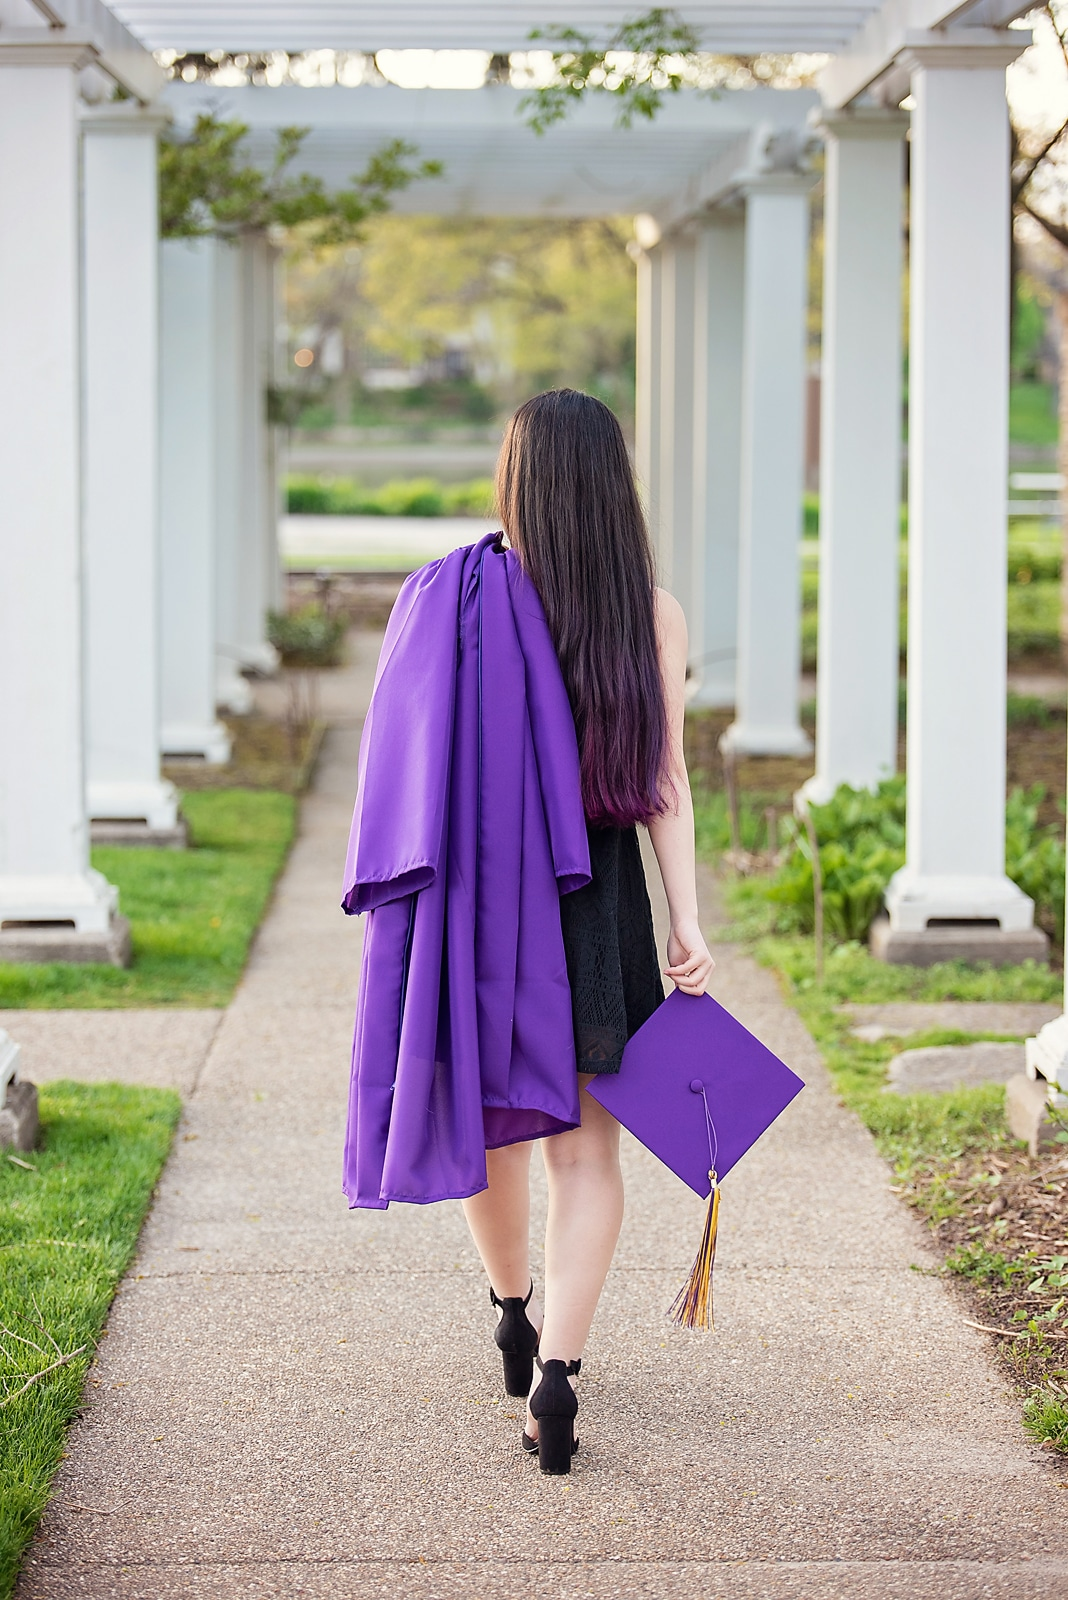 Cap and Gown Senior Photo Candid